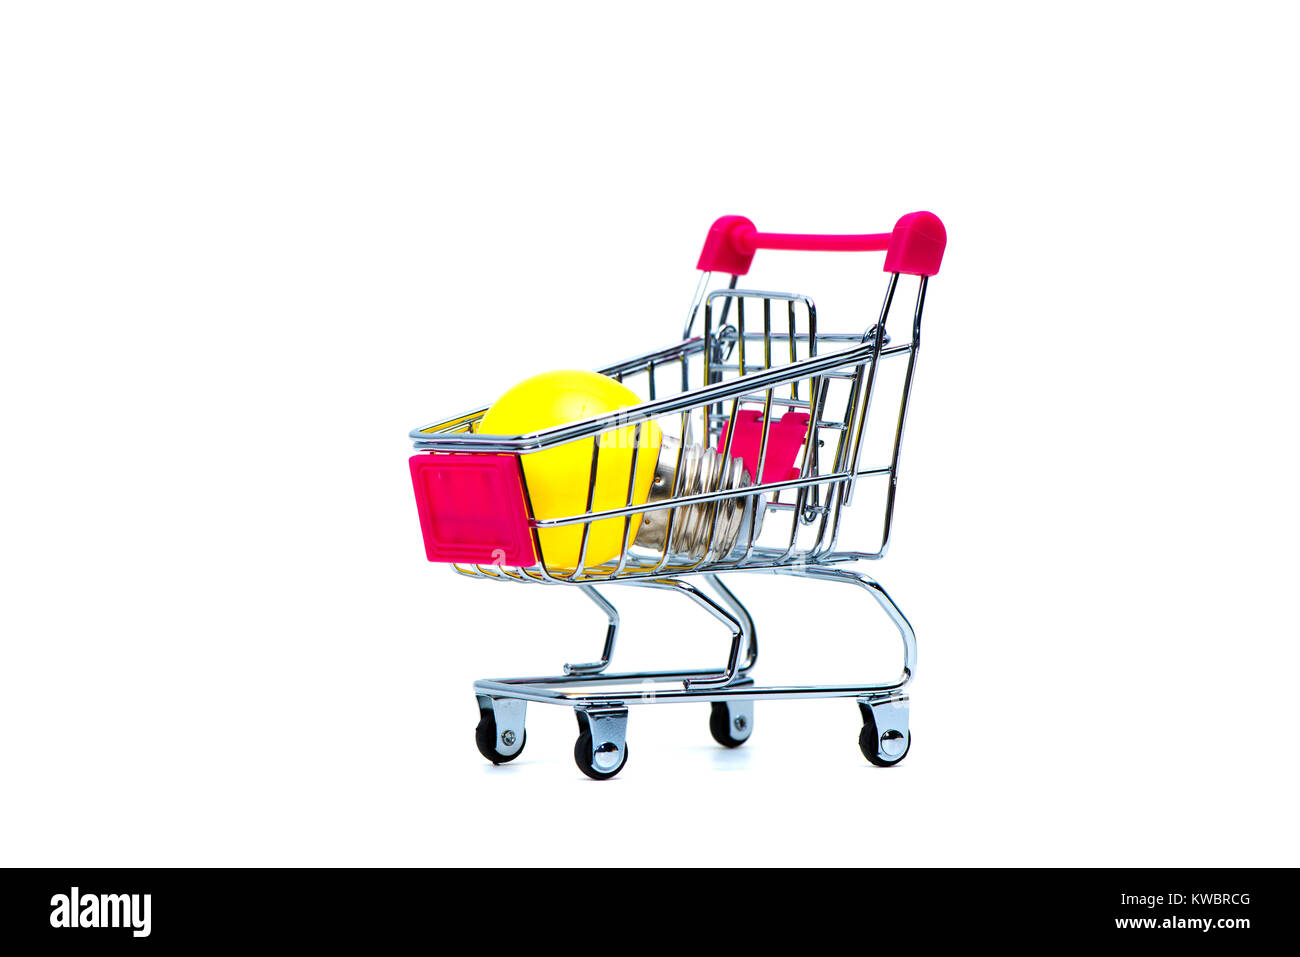 Mini shopping cart or supermarket trolley with yellow tungsten light bulb, isolated on white background, business - Stock Image